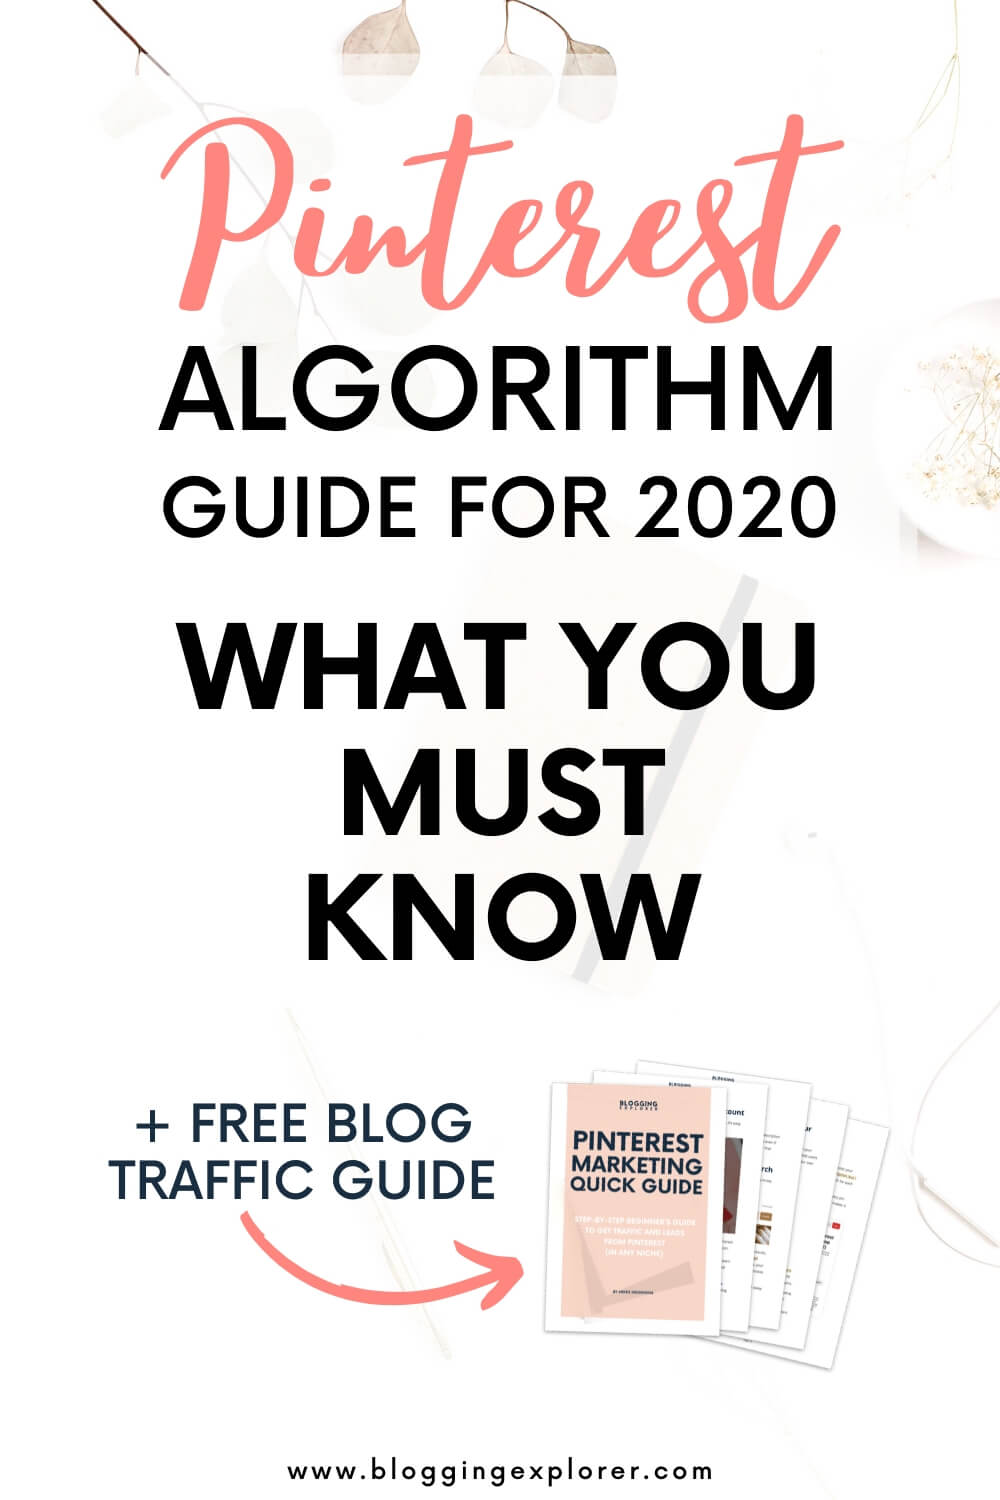 Pinterest algorithm 2020 - How to grow blog traffic with Pinterest marketing strategies for beginners